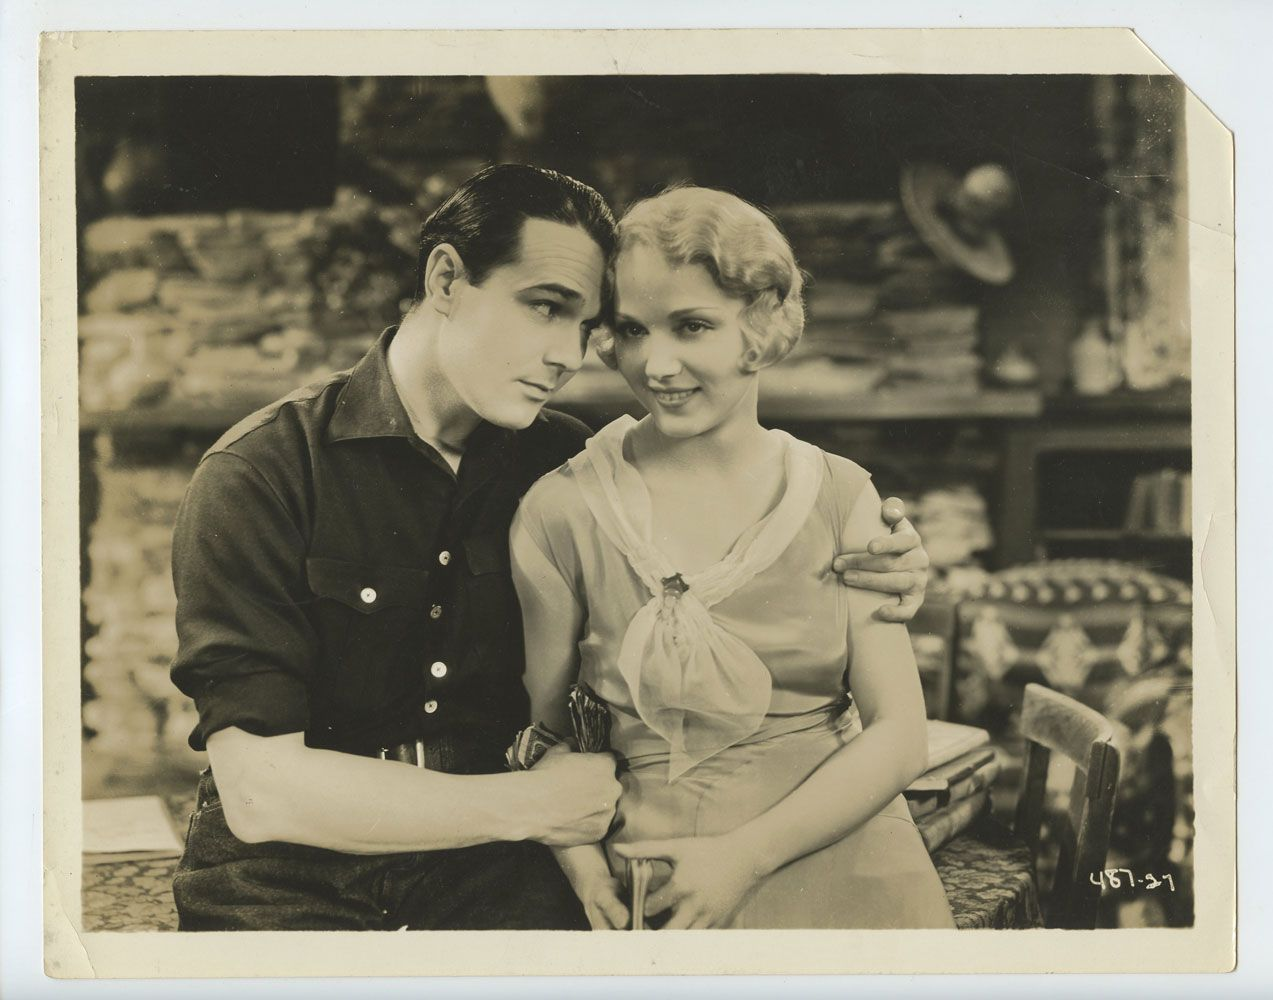 Leila Hyams William Haines Photo 1930 Way Out West Leila